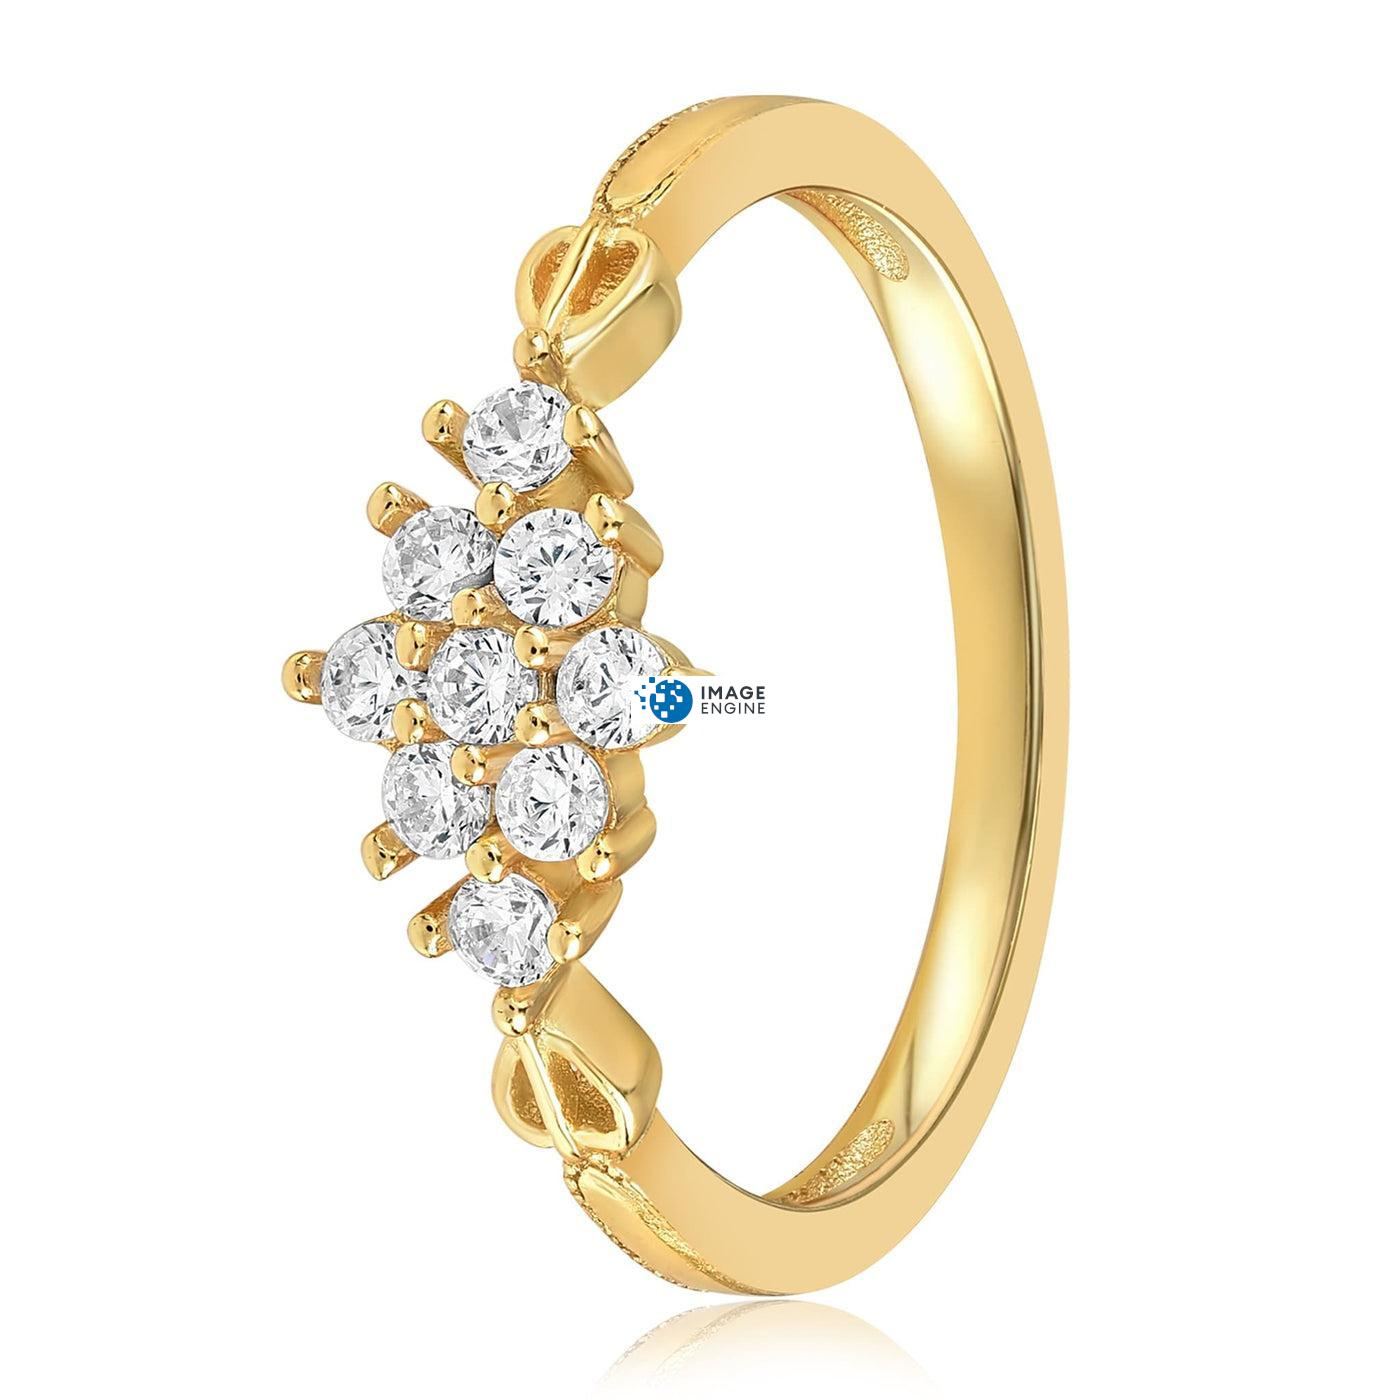 Sarah Snowflake Dainty Ring - Side View - 18K Yellow Gold Vermeil